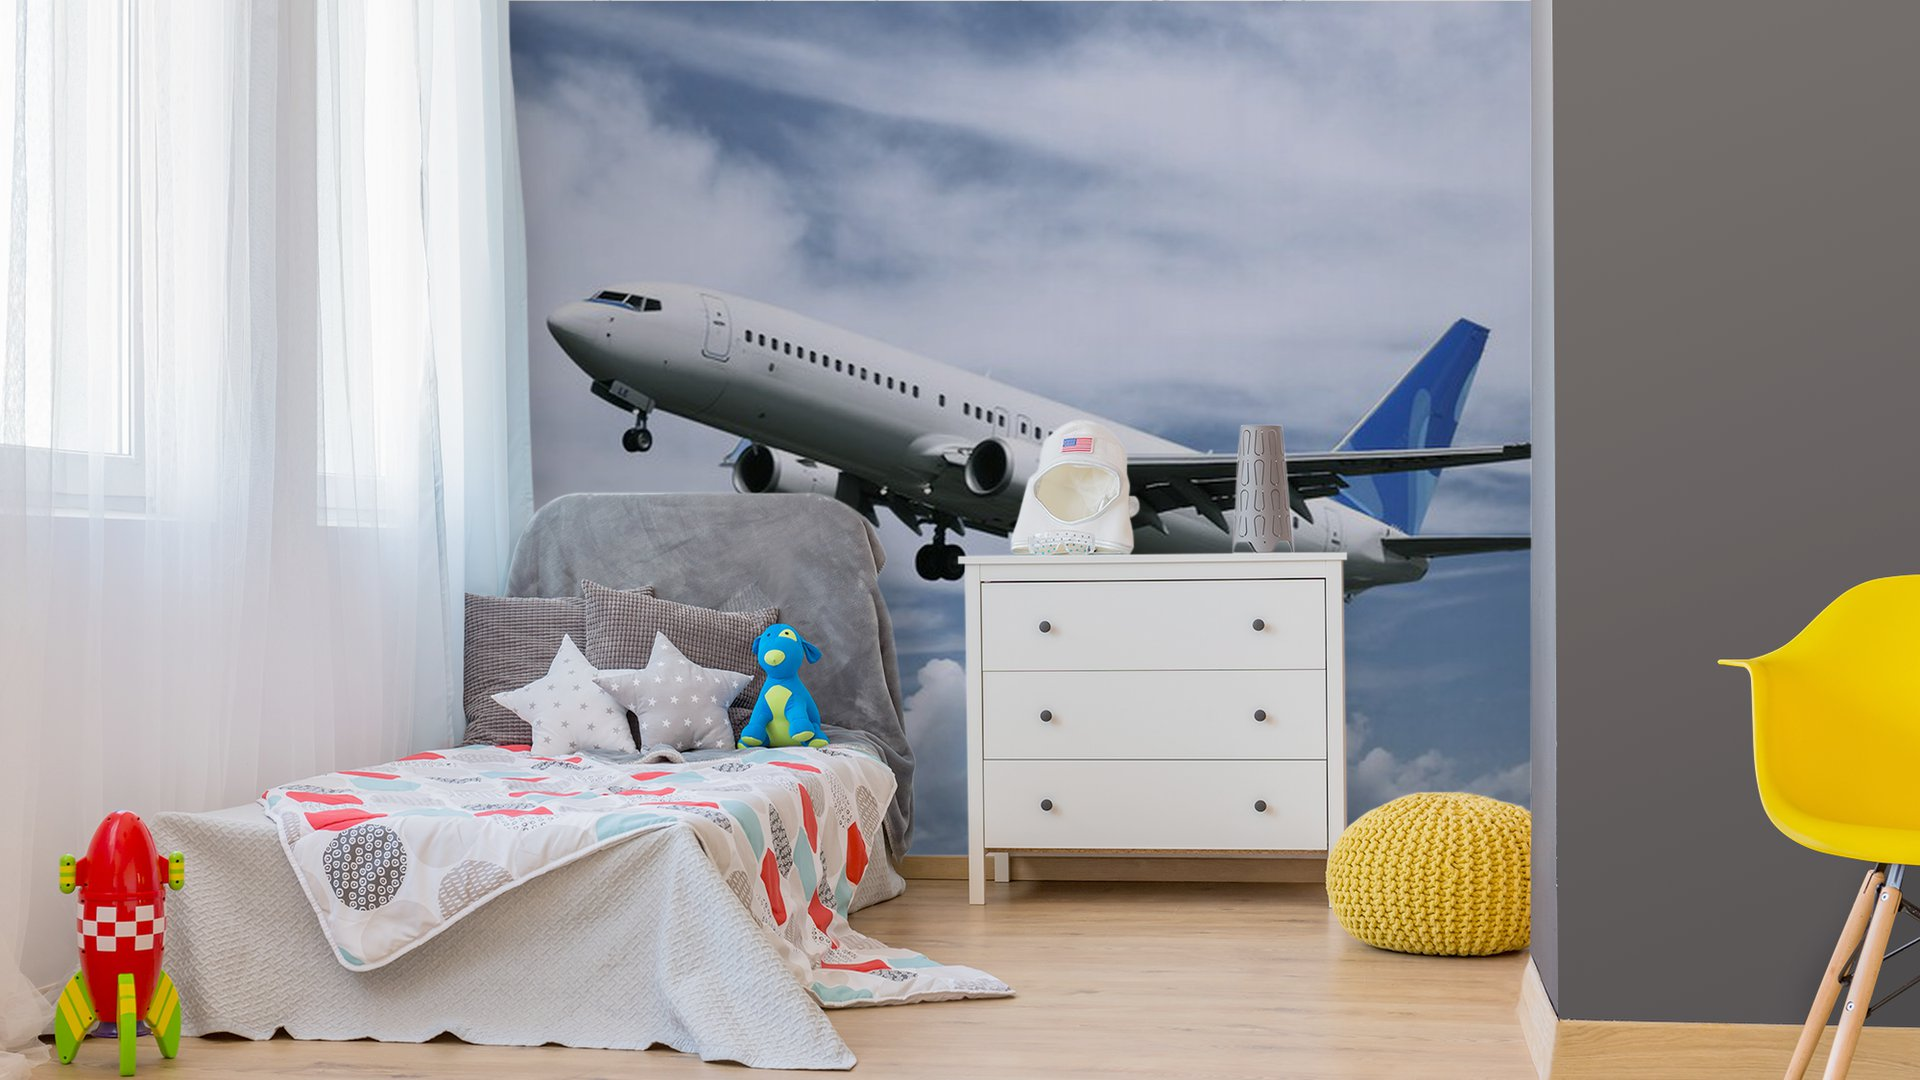 Passenger airplane landing vinyl wall mural pixers we for Aviation wall mural